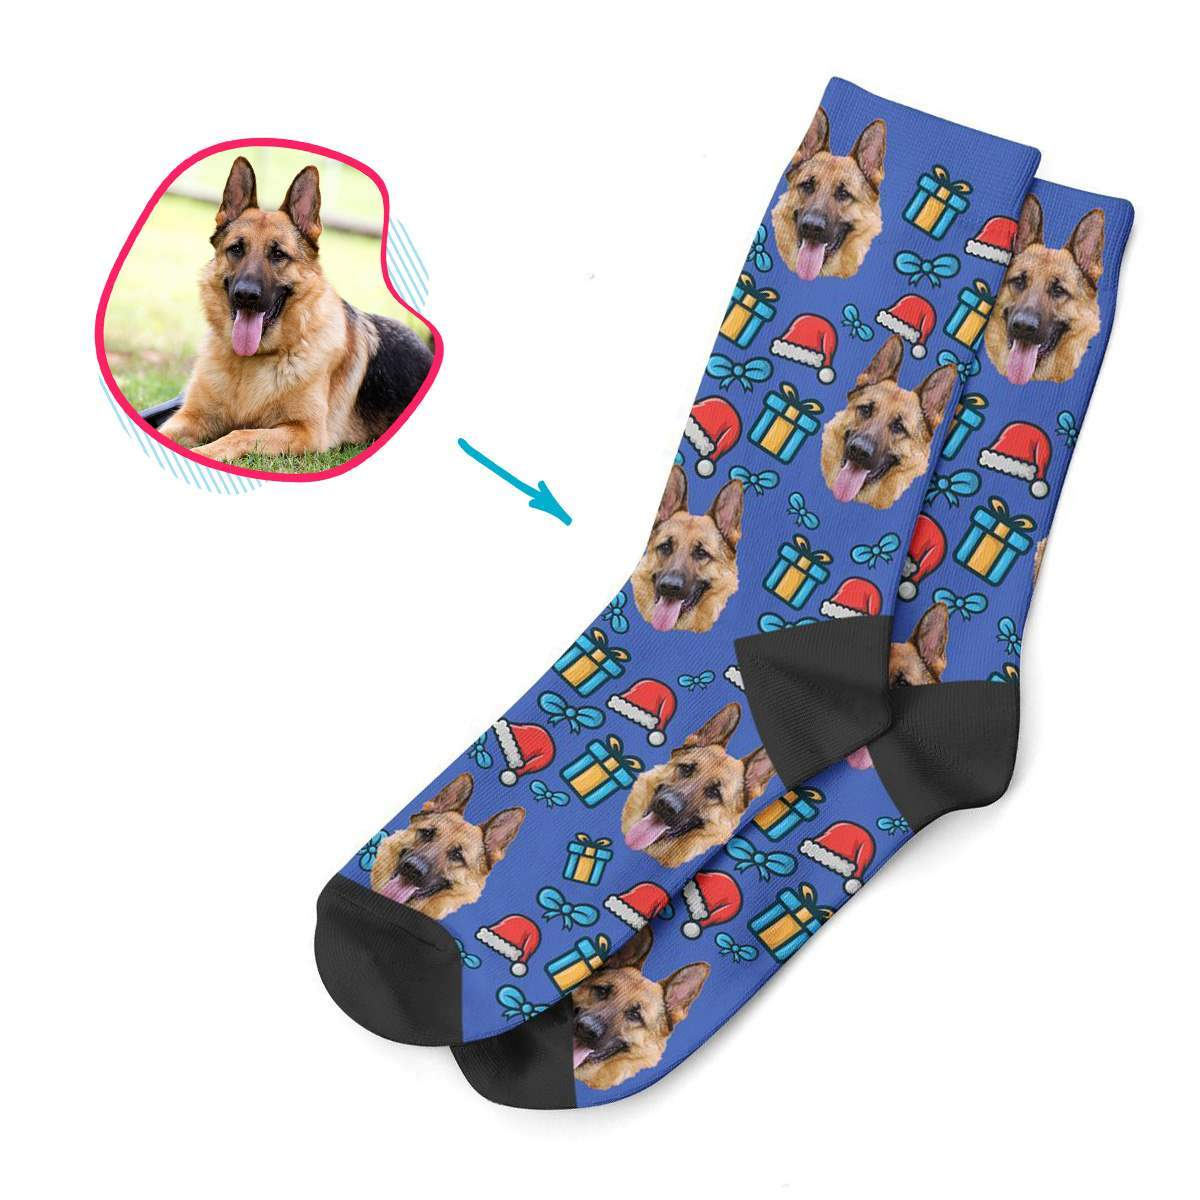 darkblue Christmas Hat socks personalized with photo of face printed on them